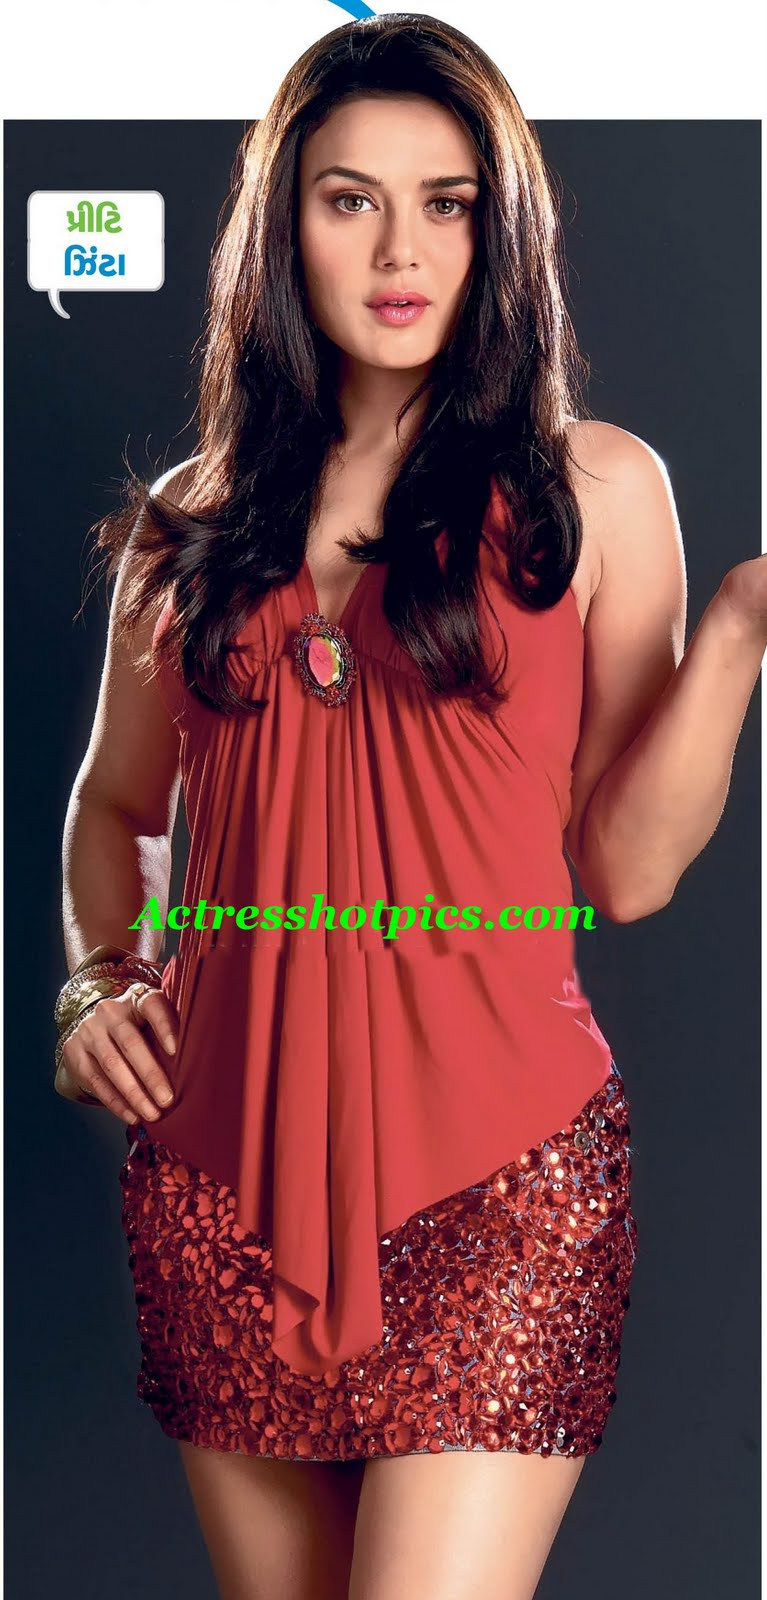 Sexy Photo Preity Zinta